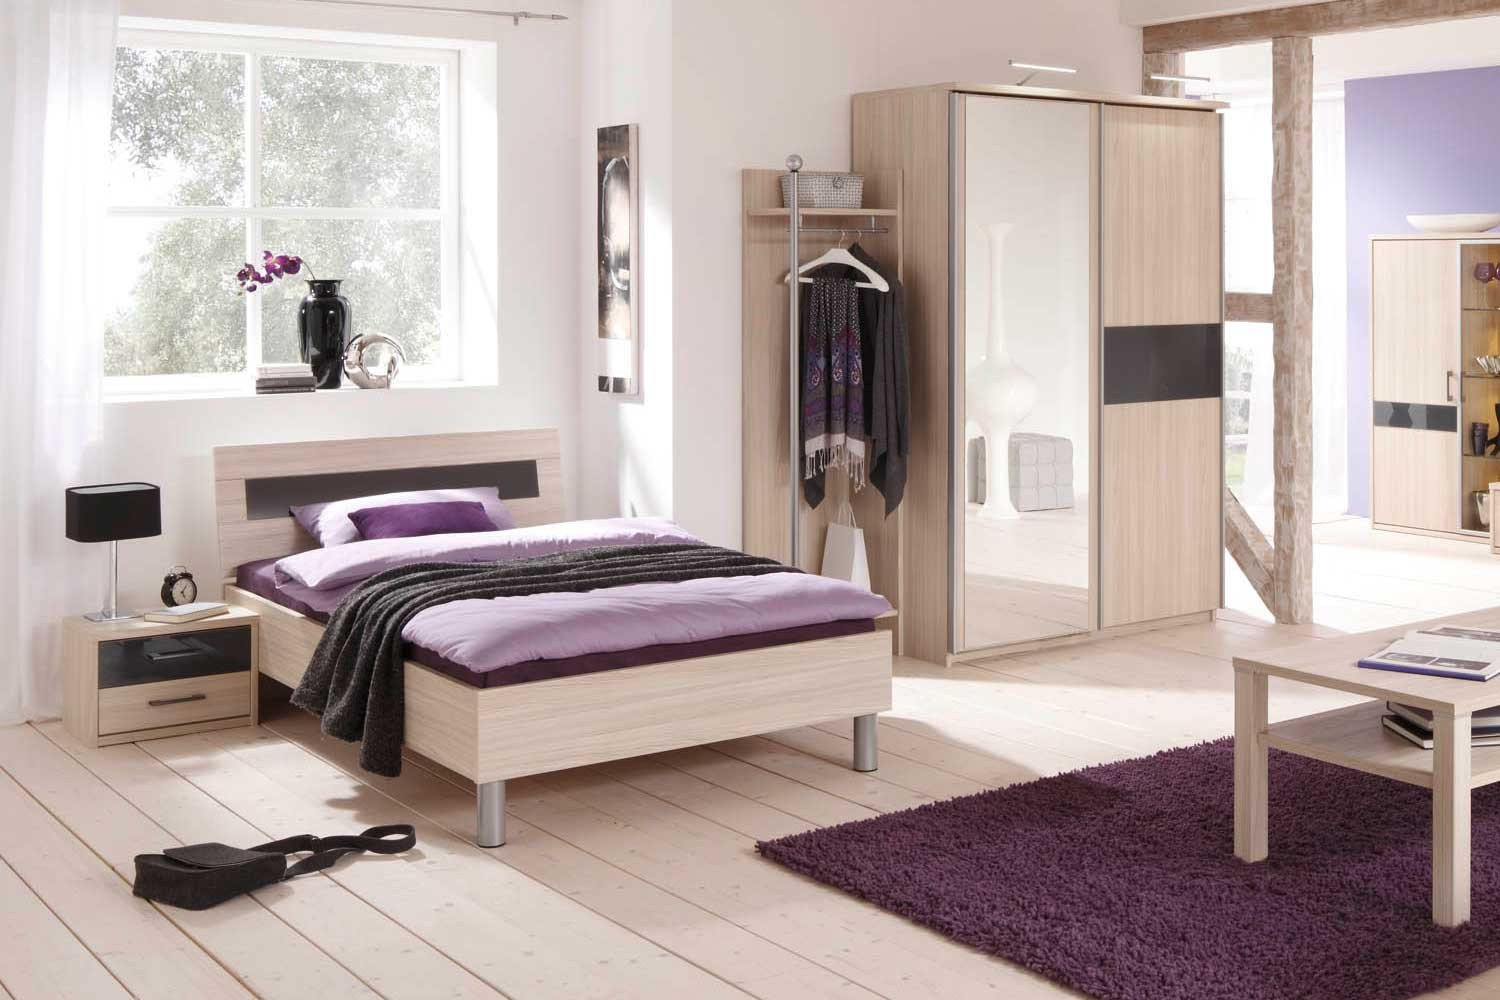 priess riva jugendzimmer akazie anthrazit m bel letz ihr online shop. Black Bedroom Furniture Sets. Home Design Ideas